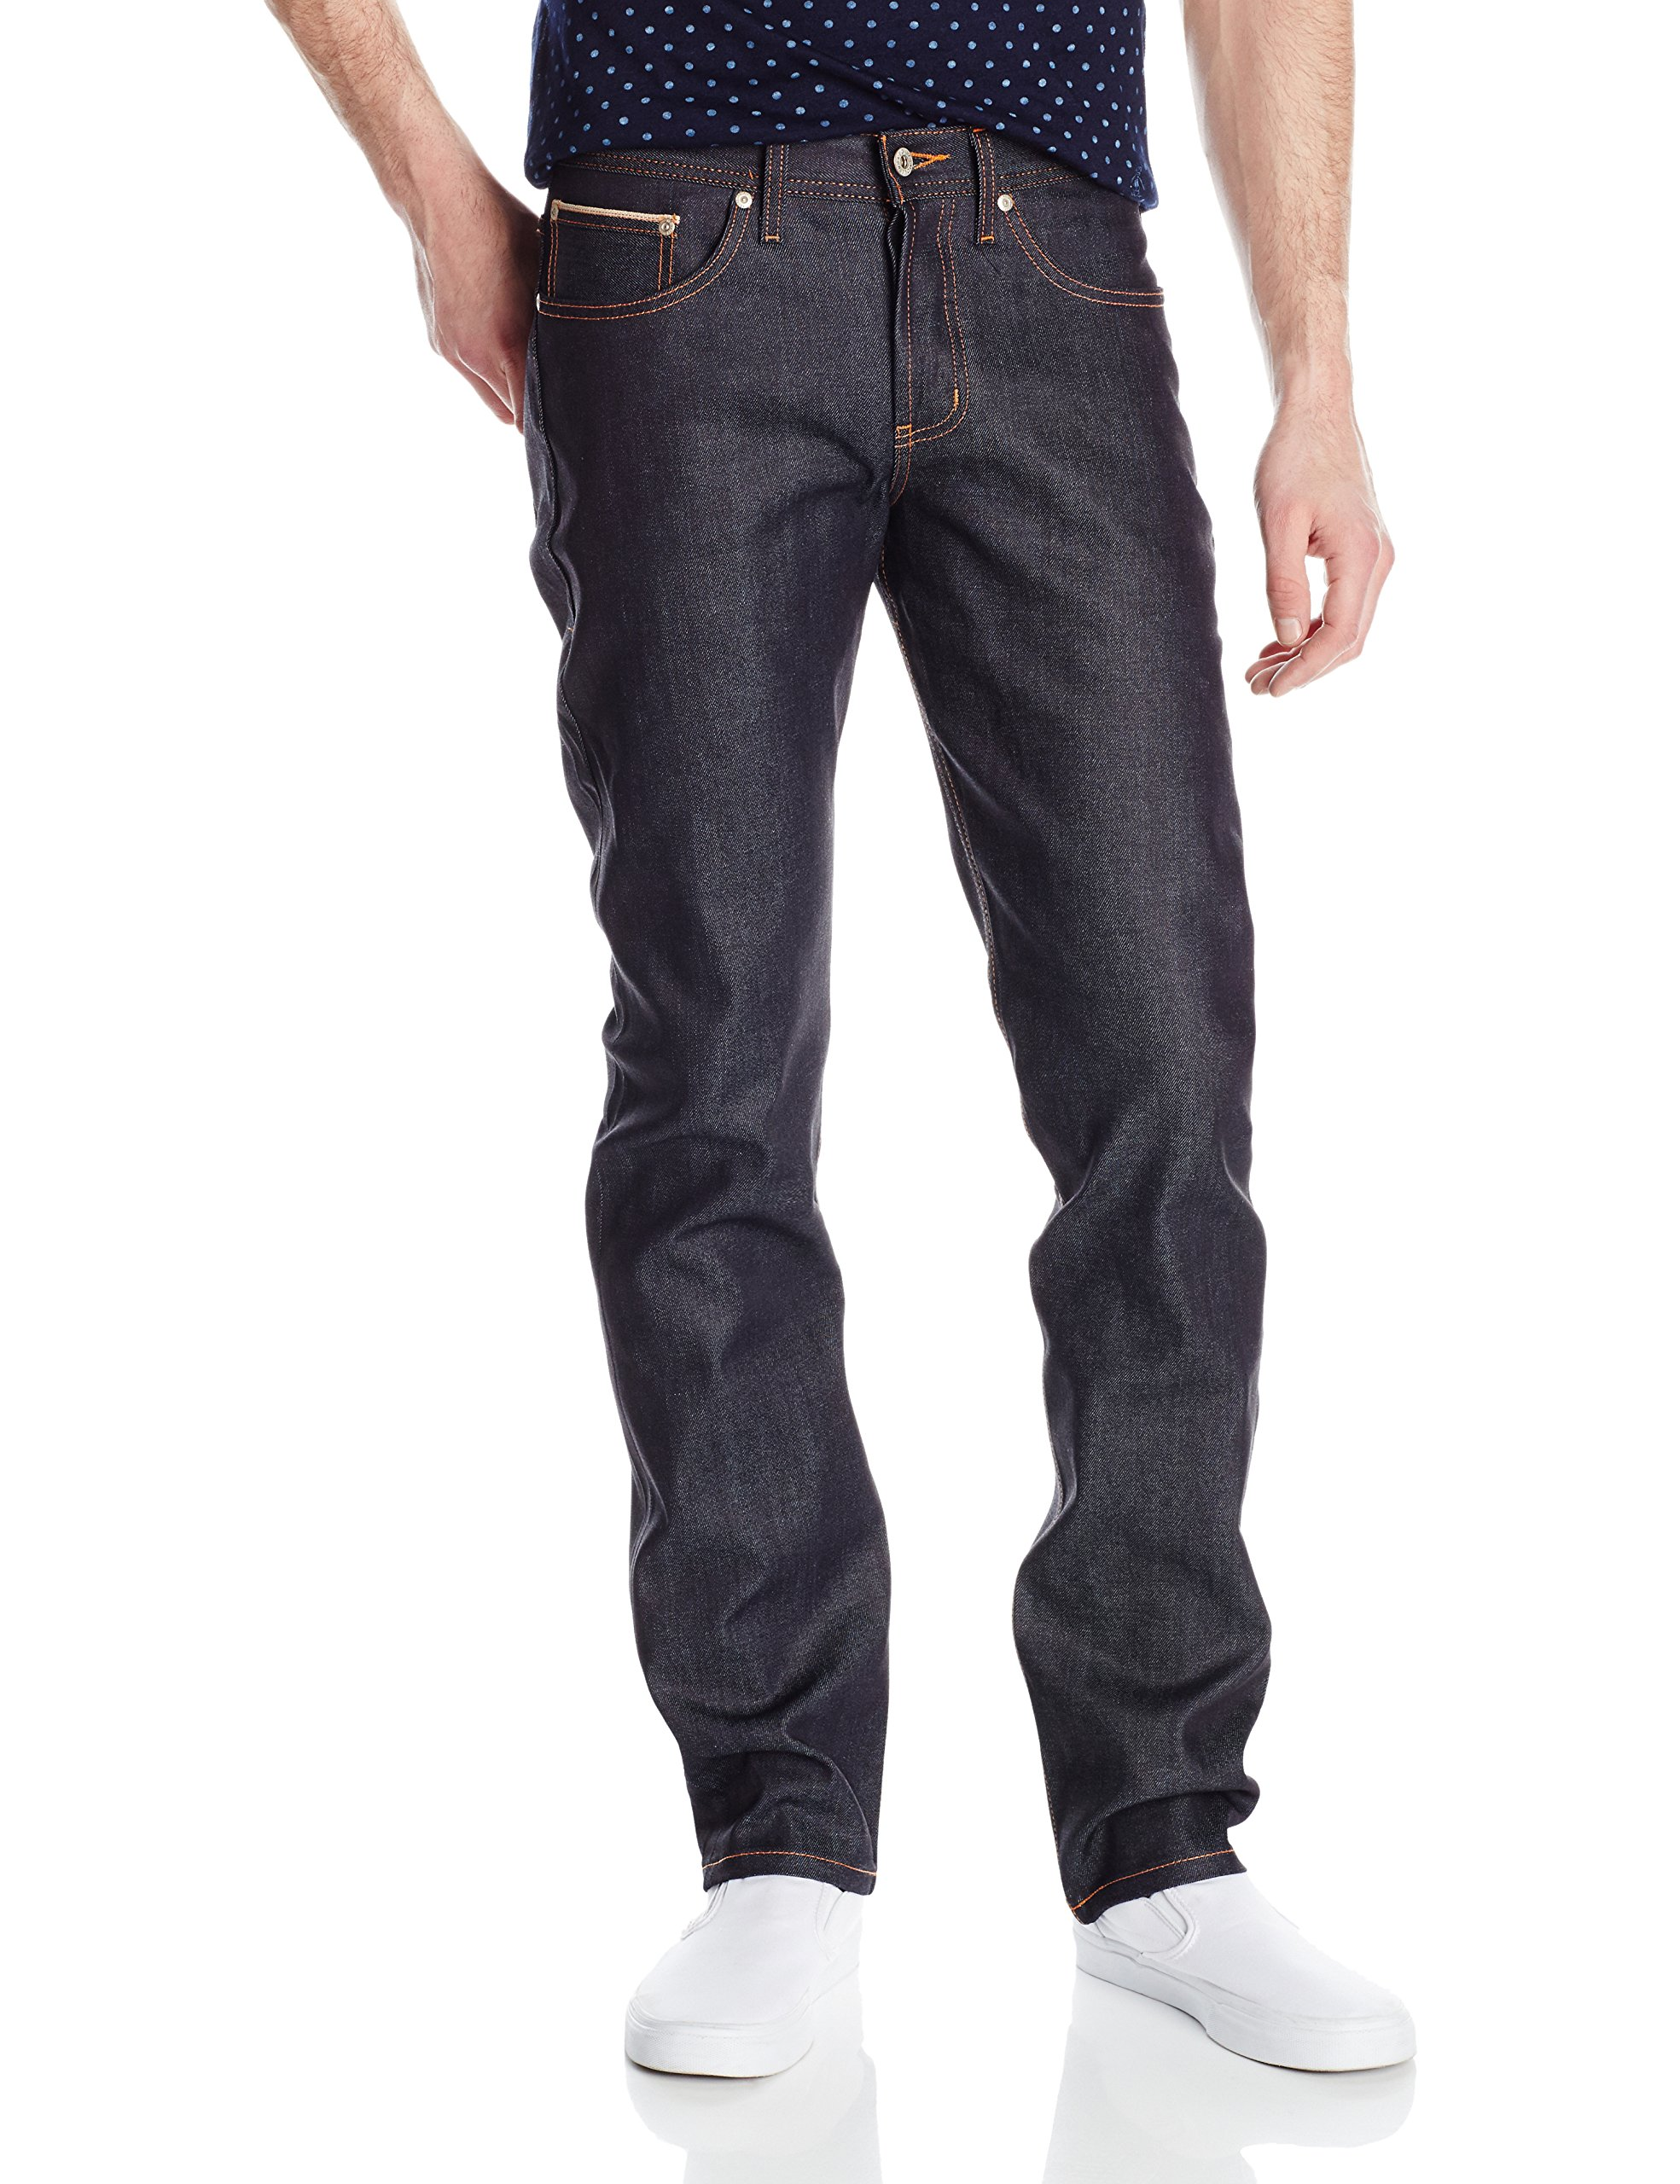 Naked & Famous Denim Men's Weirdguy Tapered Fit Jean In 11Oz Stretch Selvedge, Oz Stretch Selvedge, 34